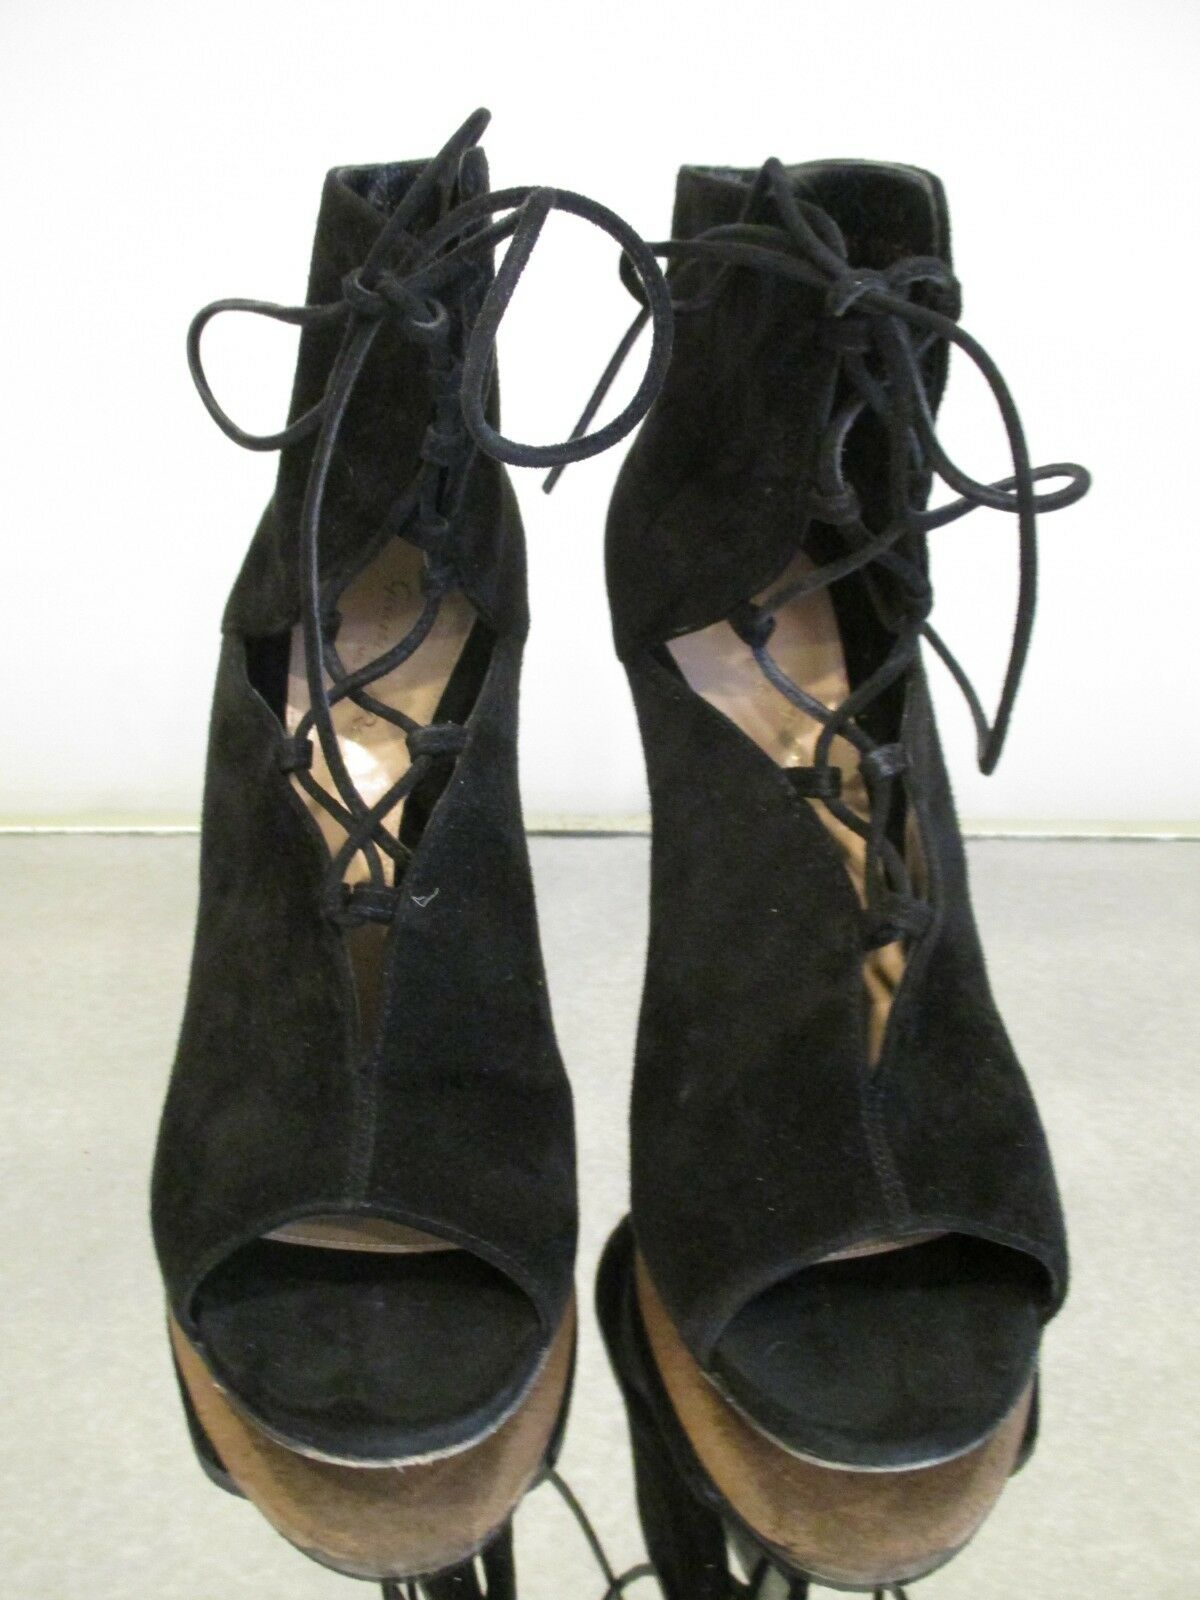 GIANVITO ROSSI ROSSI ROSSI Julia Black Suede Cutout Lace-Up 105mm Bootie - Size 39 f74aec